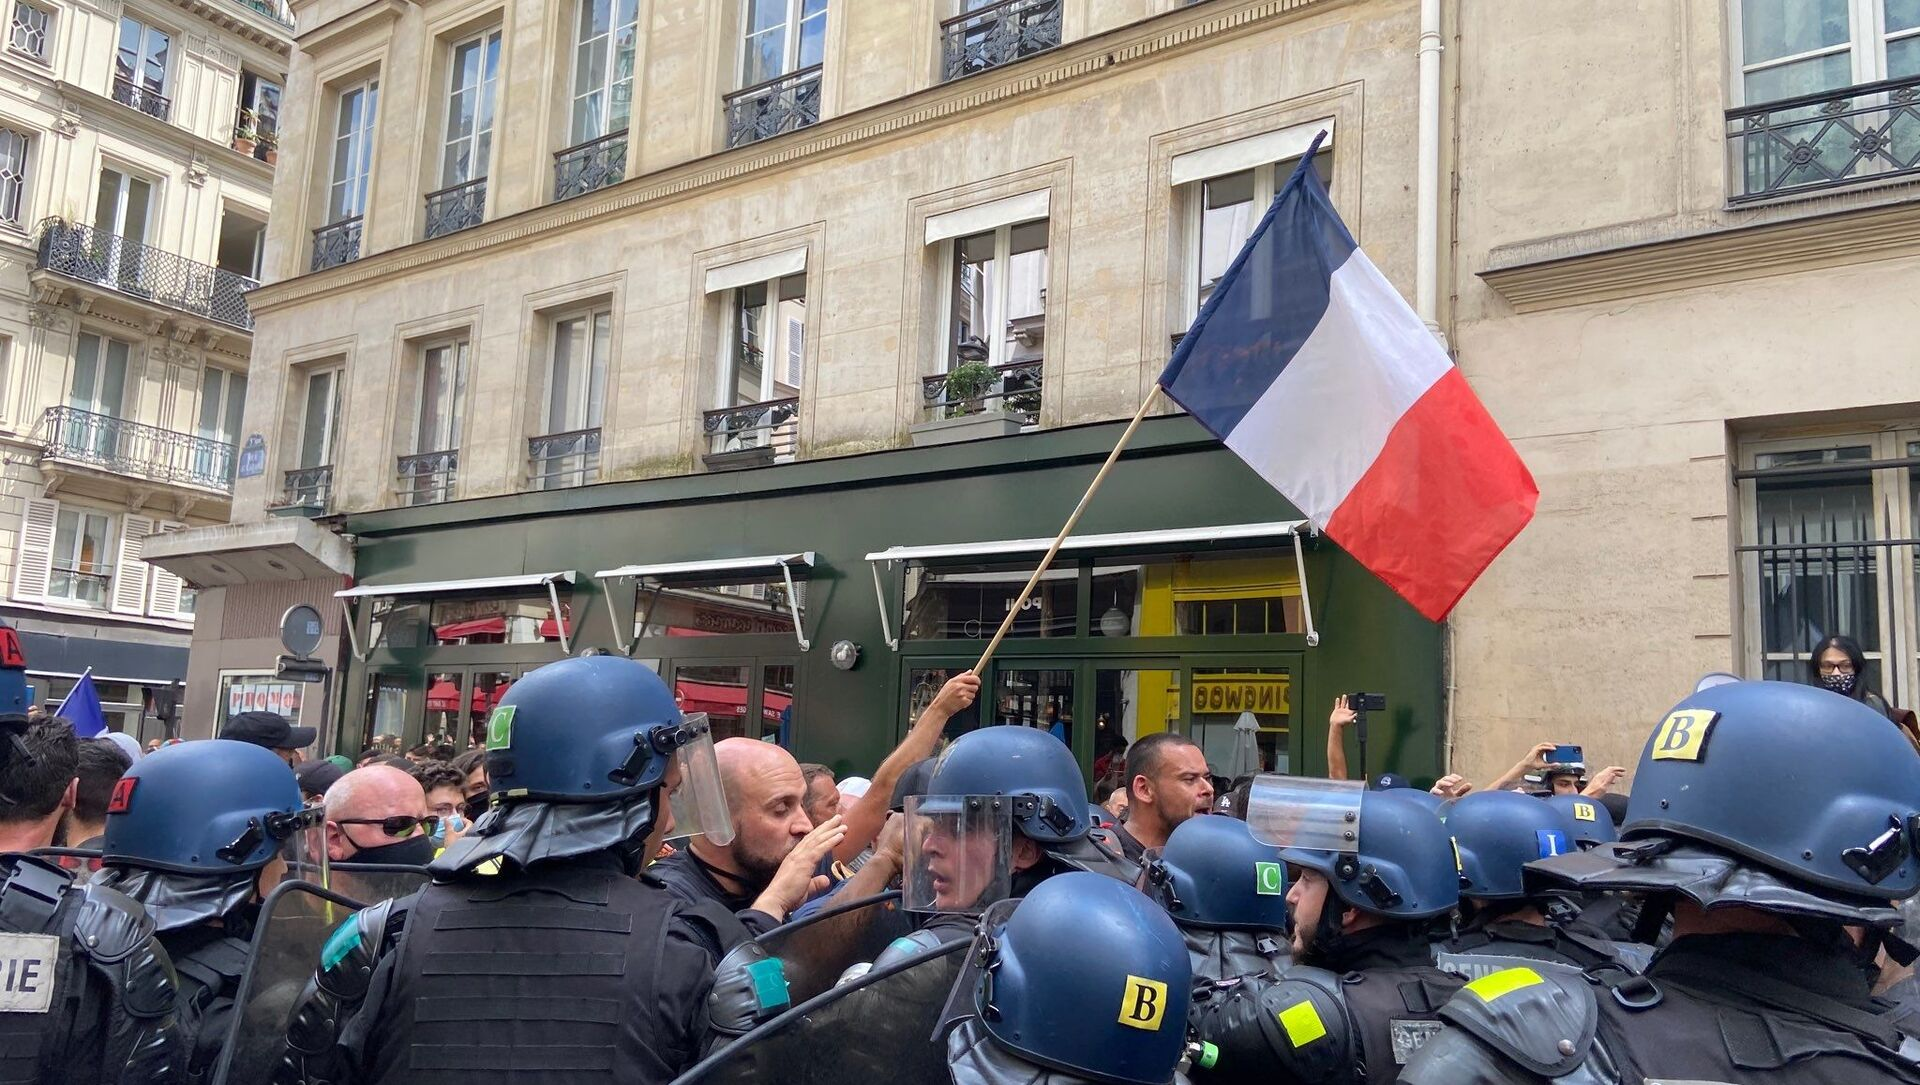 Demonstrators Clash With Police as French Protest Against COVID-19 Passes - Sputnik International, 1920, 24.07.2021